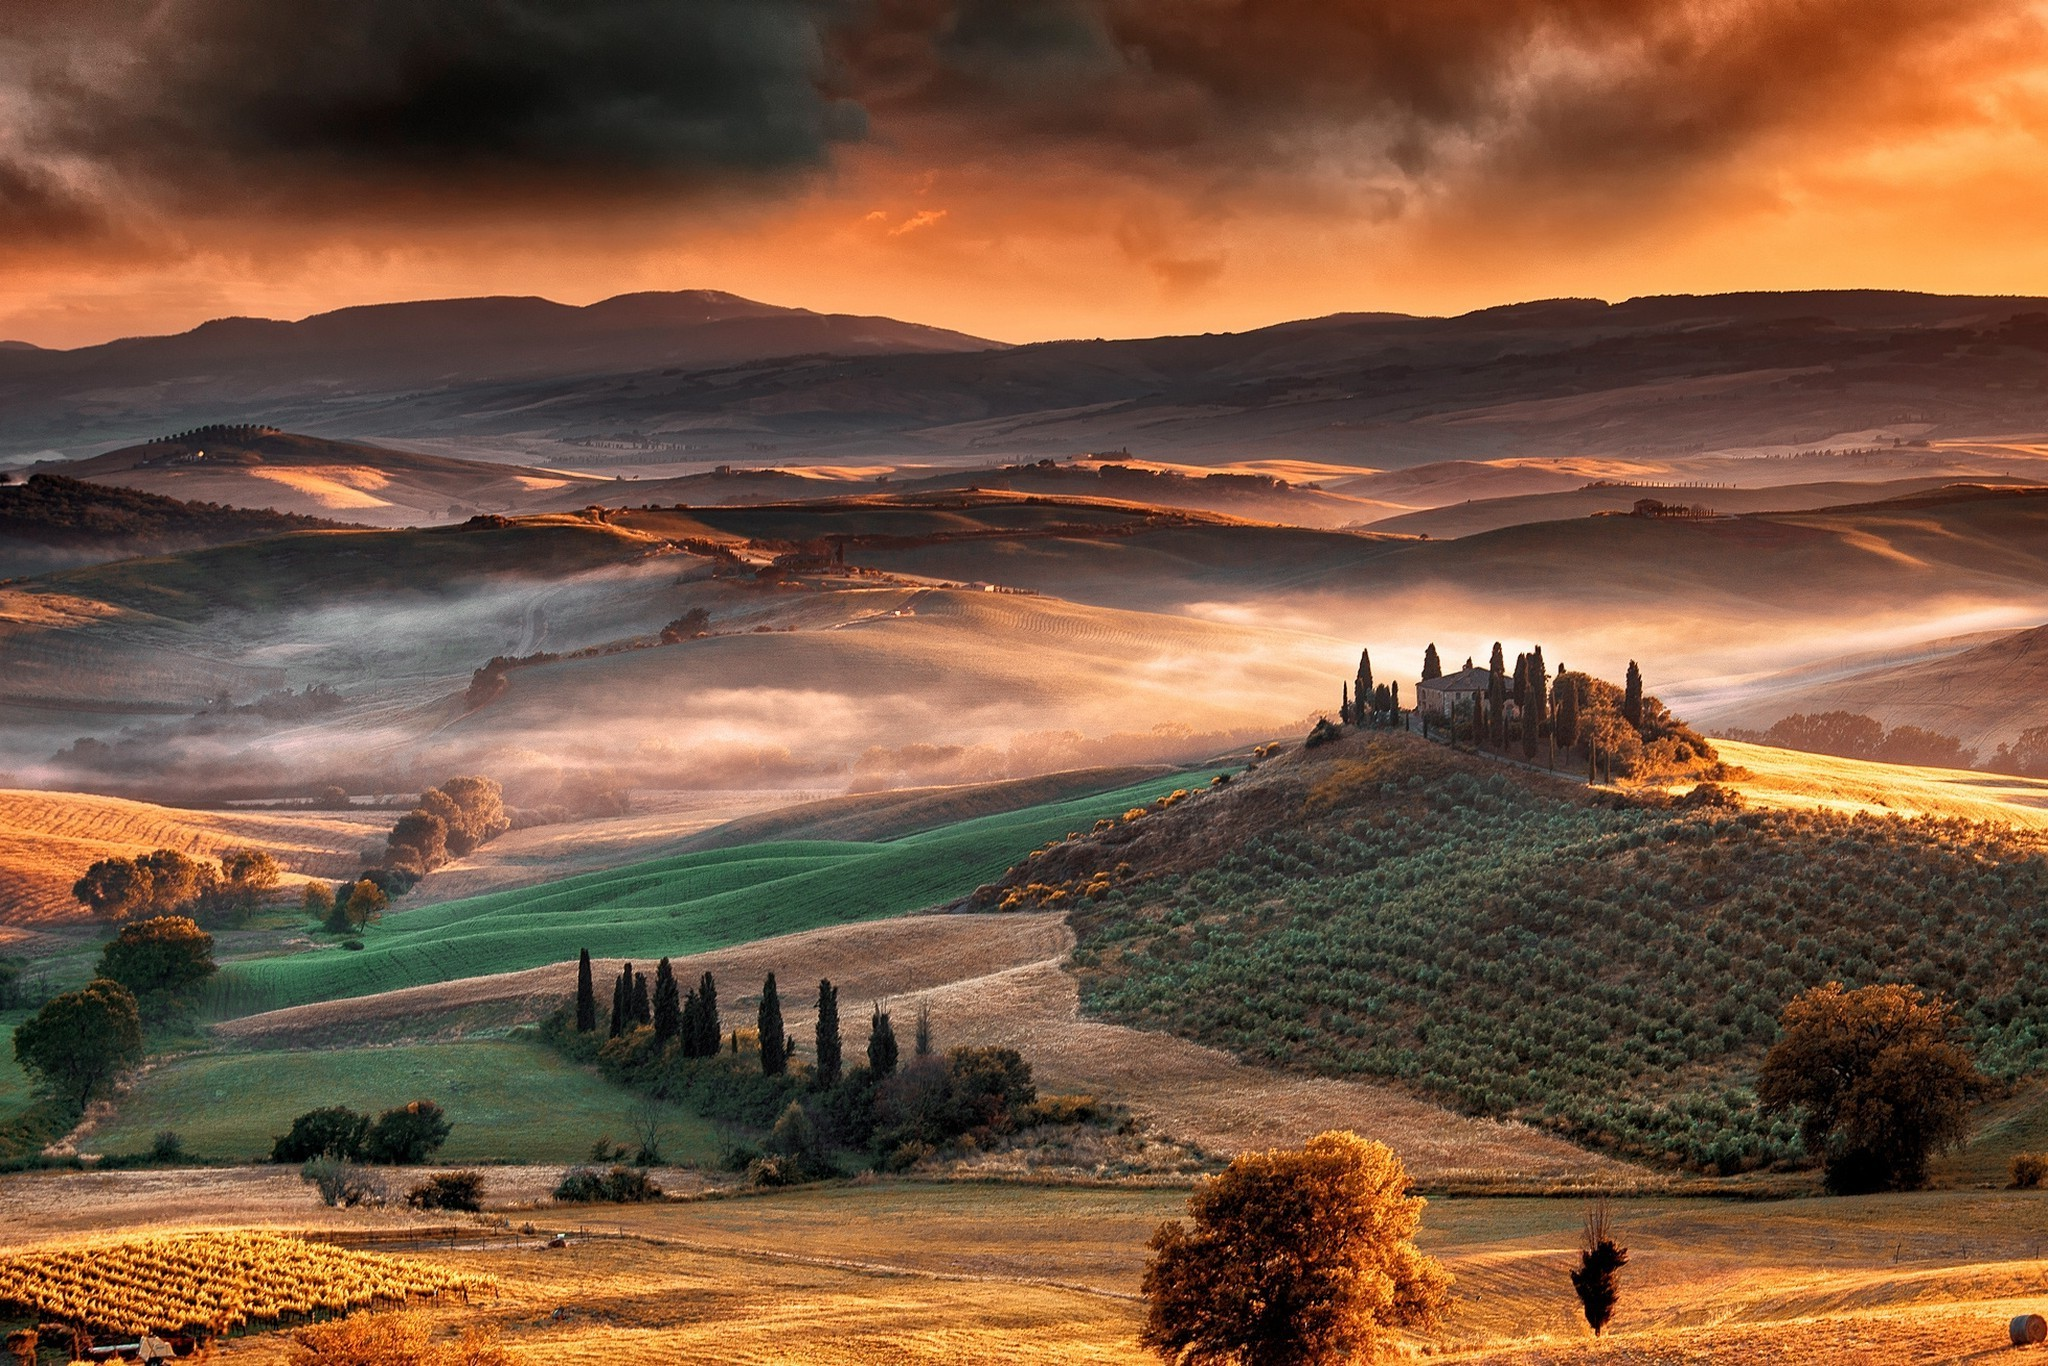 2048x1366 nature, Landscape, Mist, Sunrise, Mountain, Valley, Tuscany, Italy  Wallpapers HD / Desktop and Mobile Backgrounds